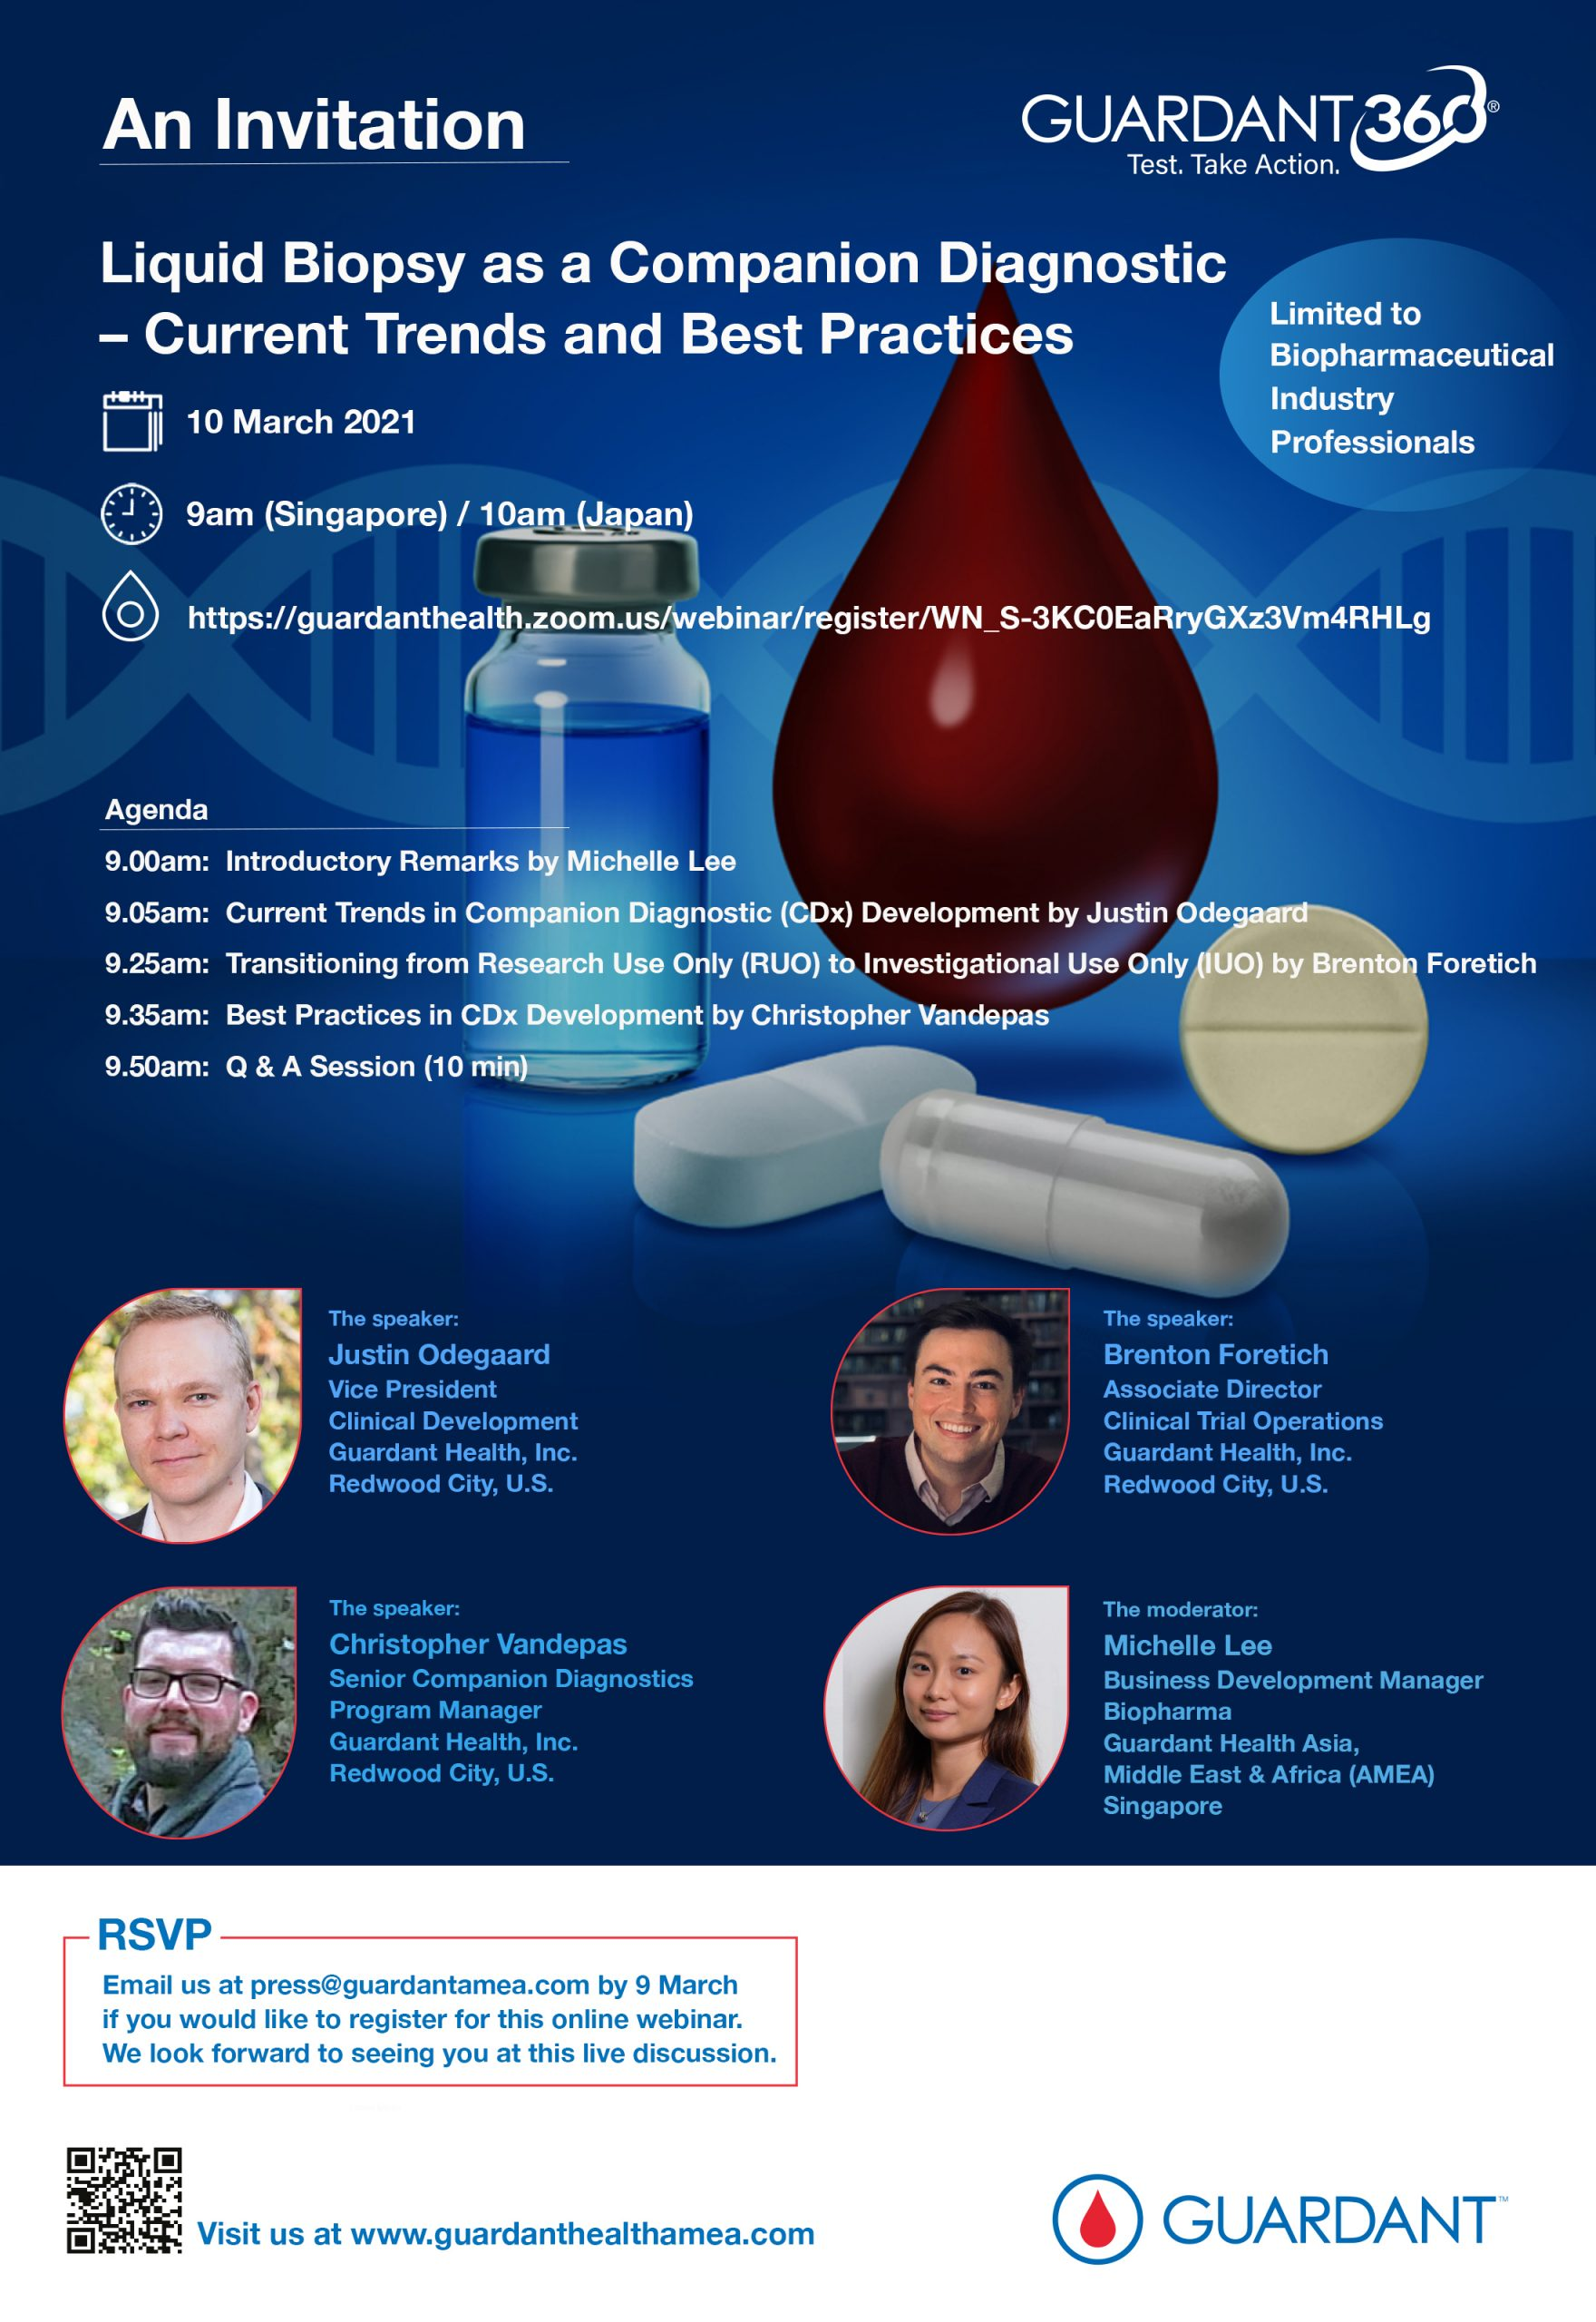 Liquid Biopsy as a Companion Diagnostic – Current Trends and Best